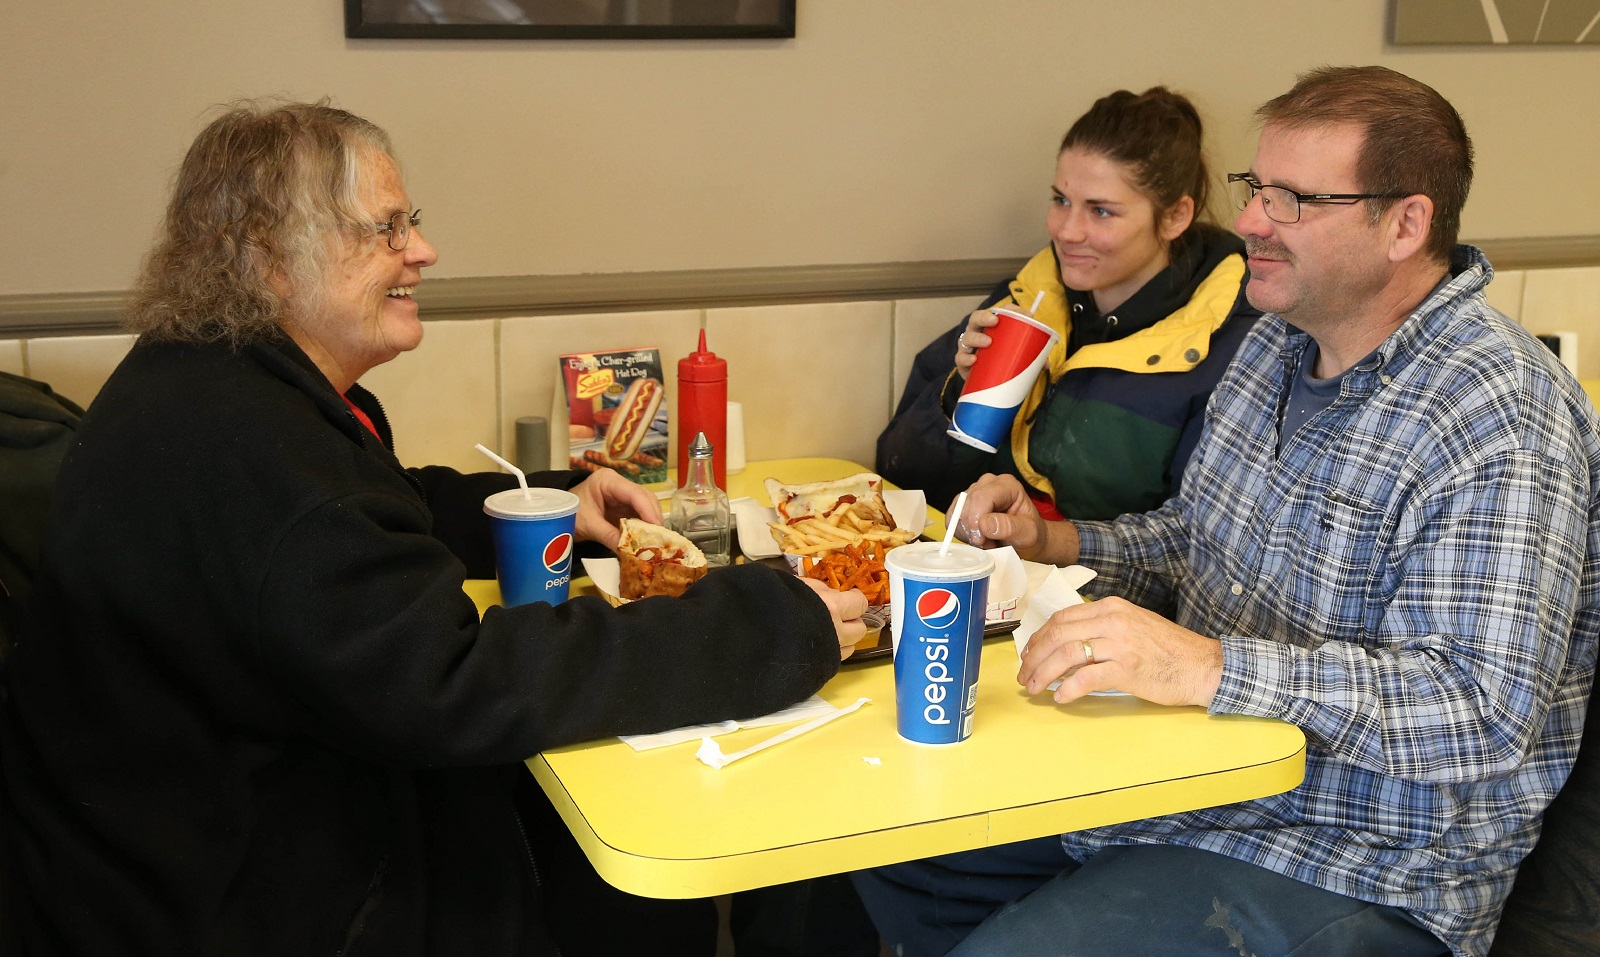 Eileen Kowal of South Buffalo, her granddaughter Ashley Kowal of Hamburg and her son Frank Kowal of Orlando, Fla., have lunch at Pete-N-Paul's. (Sharon Cantillon/Buffalo News)